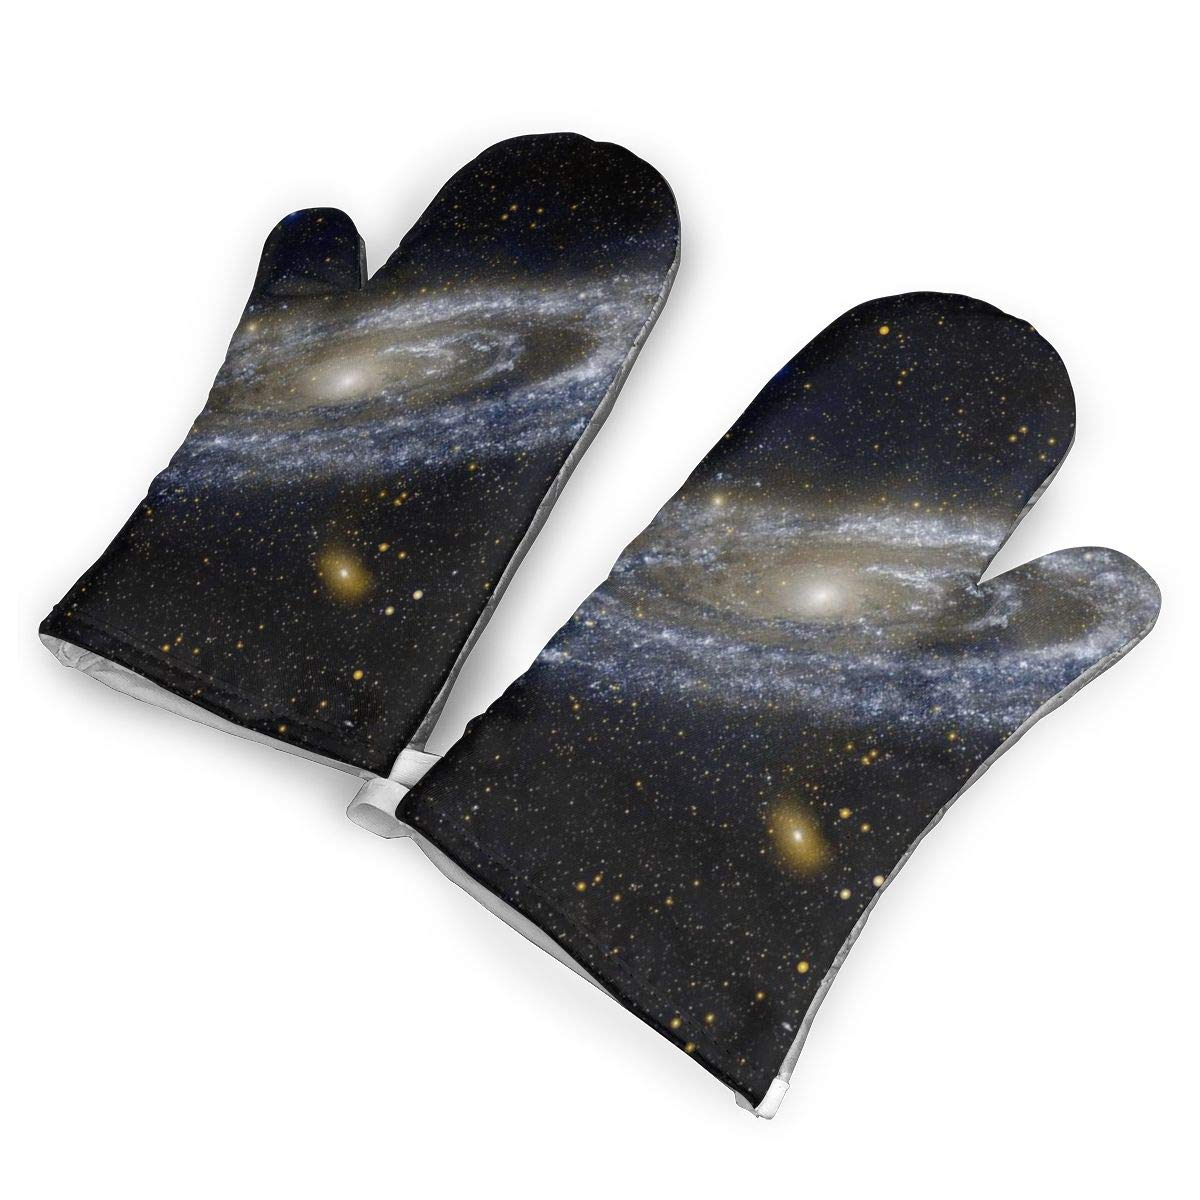 VshiXzno NASA Andromeda Galaxy Space Oven Mitts,Professional Heat Resistant to 500?? F,Non-Slip Kitchen Oven Gloves for Cooking,Baking,Grilling,Barbecue Potholders